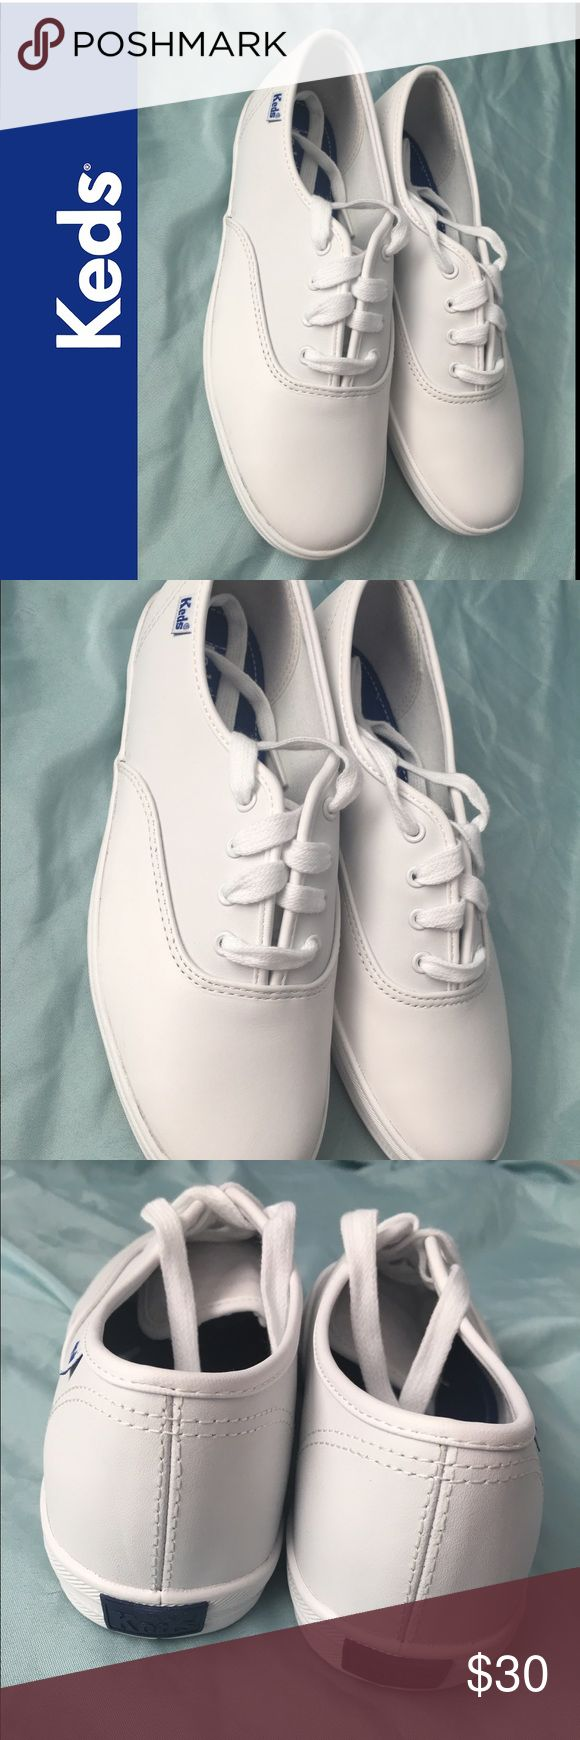 NEW!! 🌼❤KEDS Champion CVO White Leather ❤🌼 🔥New Champion CVO White Leather Shoes. Big Kids Girls size 4.5W🔥 Keds Shoes Sneakers